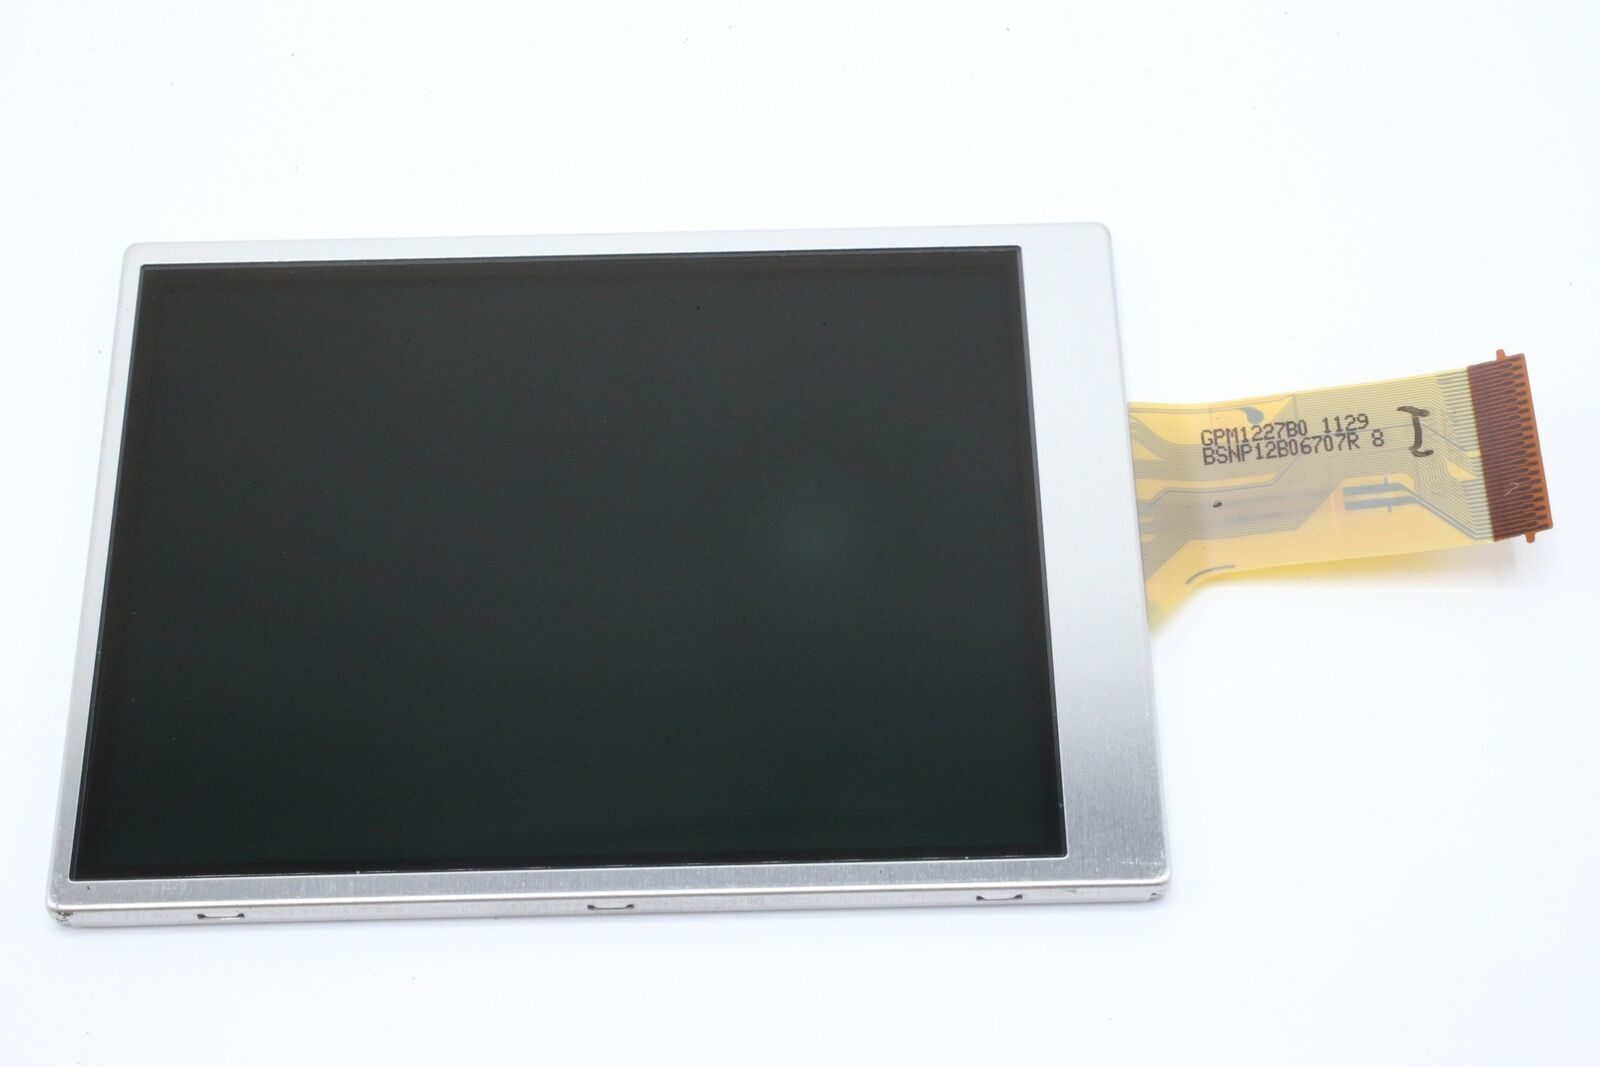 New LCD Screen Display Backlight Repair Part For Nikon Coolpix A100 A300 - $12.99